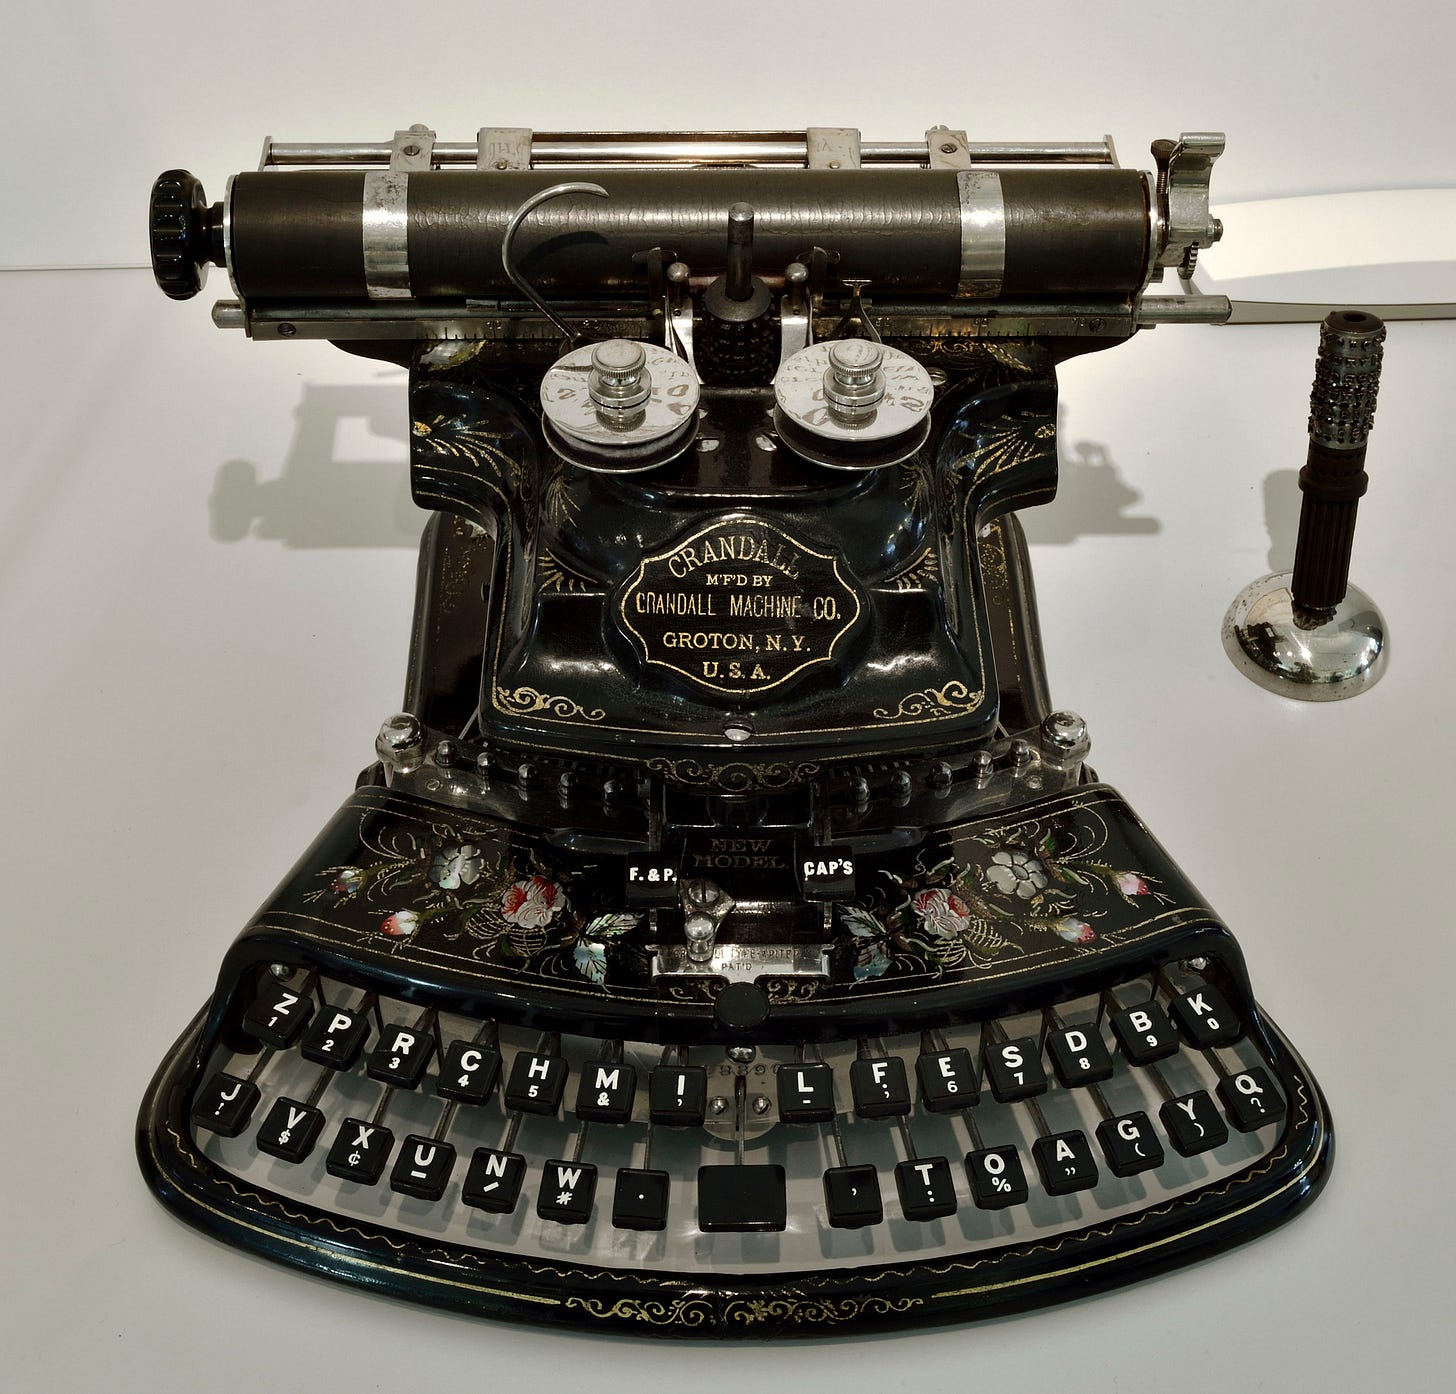 I won't actually be writing on one of these…